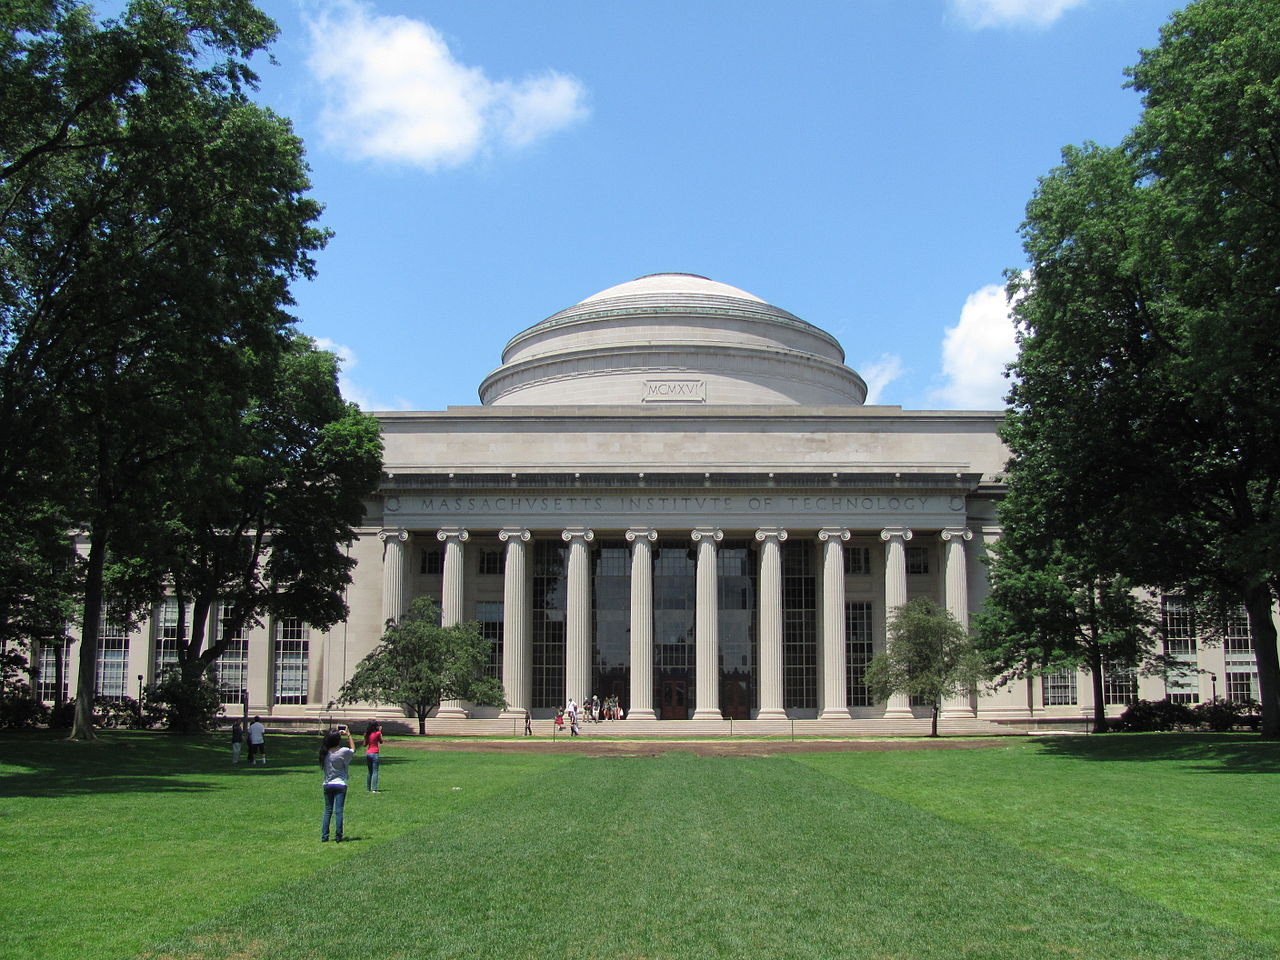 1280px-mit_building_10_and_the_great_dome_cambridge_ma